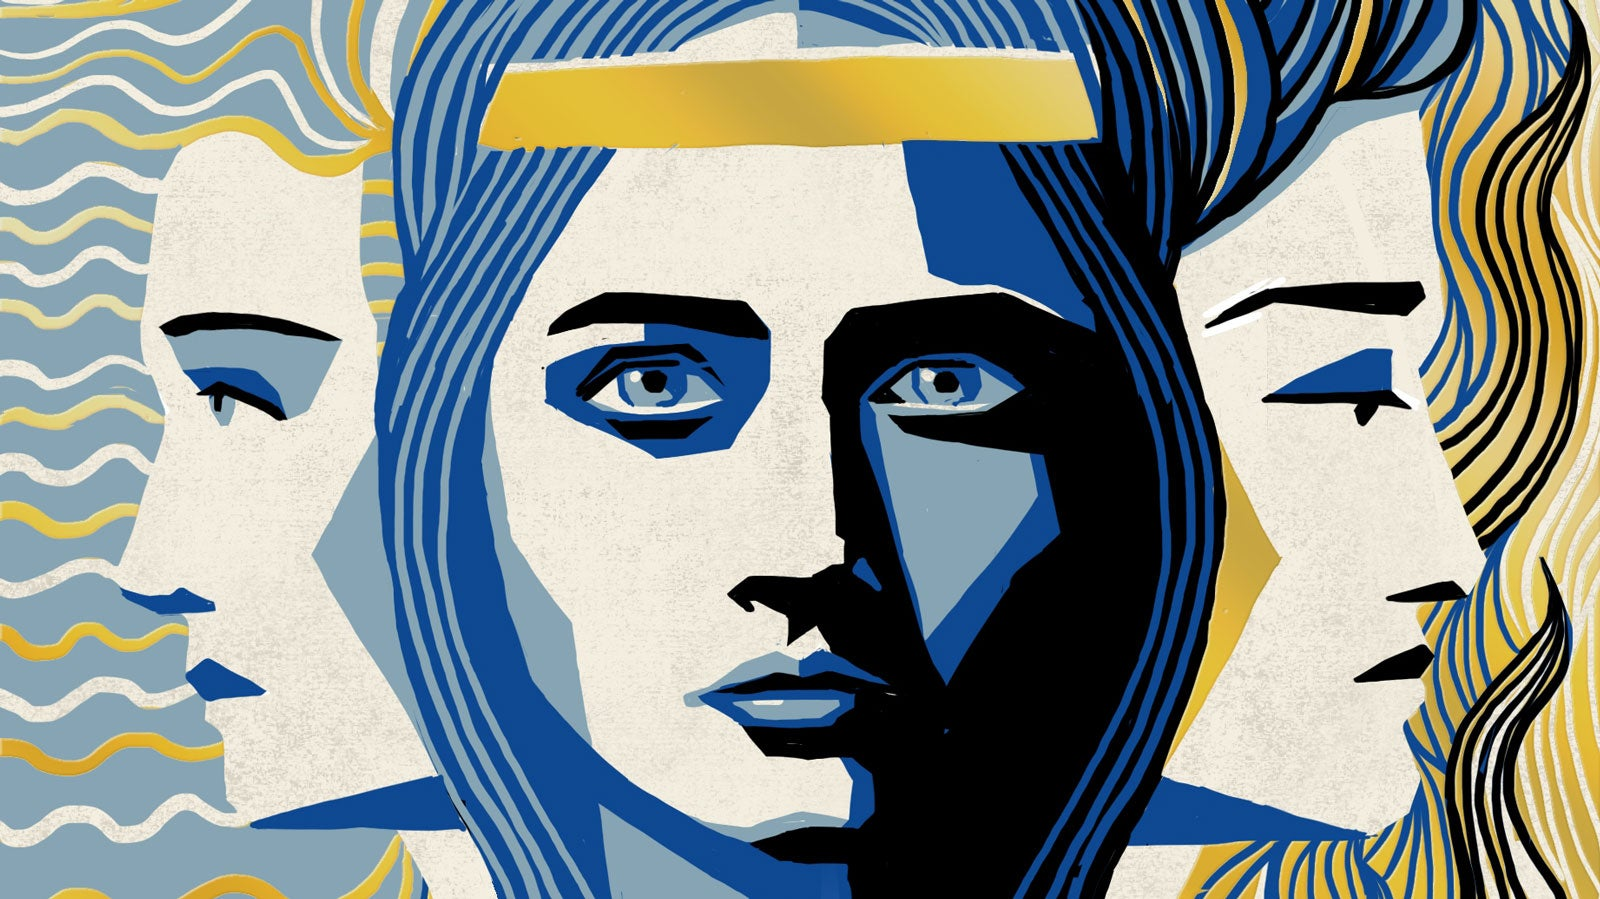 An illustration in shades of blue and yellow of three women, one looking directly forward, the other two looking in opposite directions behind her